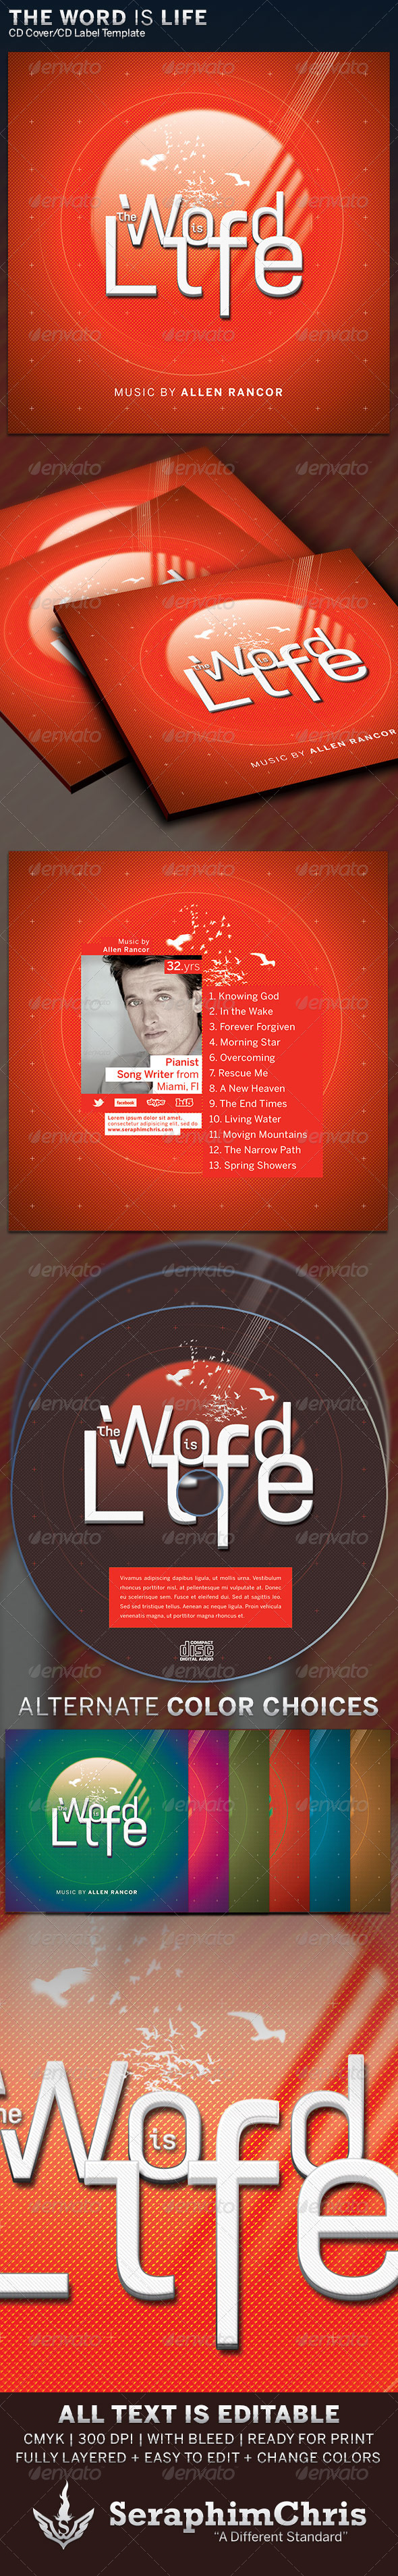 The Word Is Life: CD Cover Artwork Template - CD & DVD Artwork Print Templates